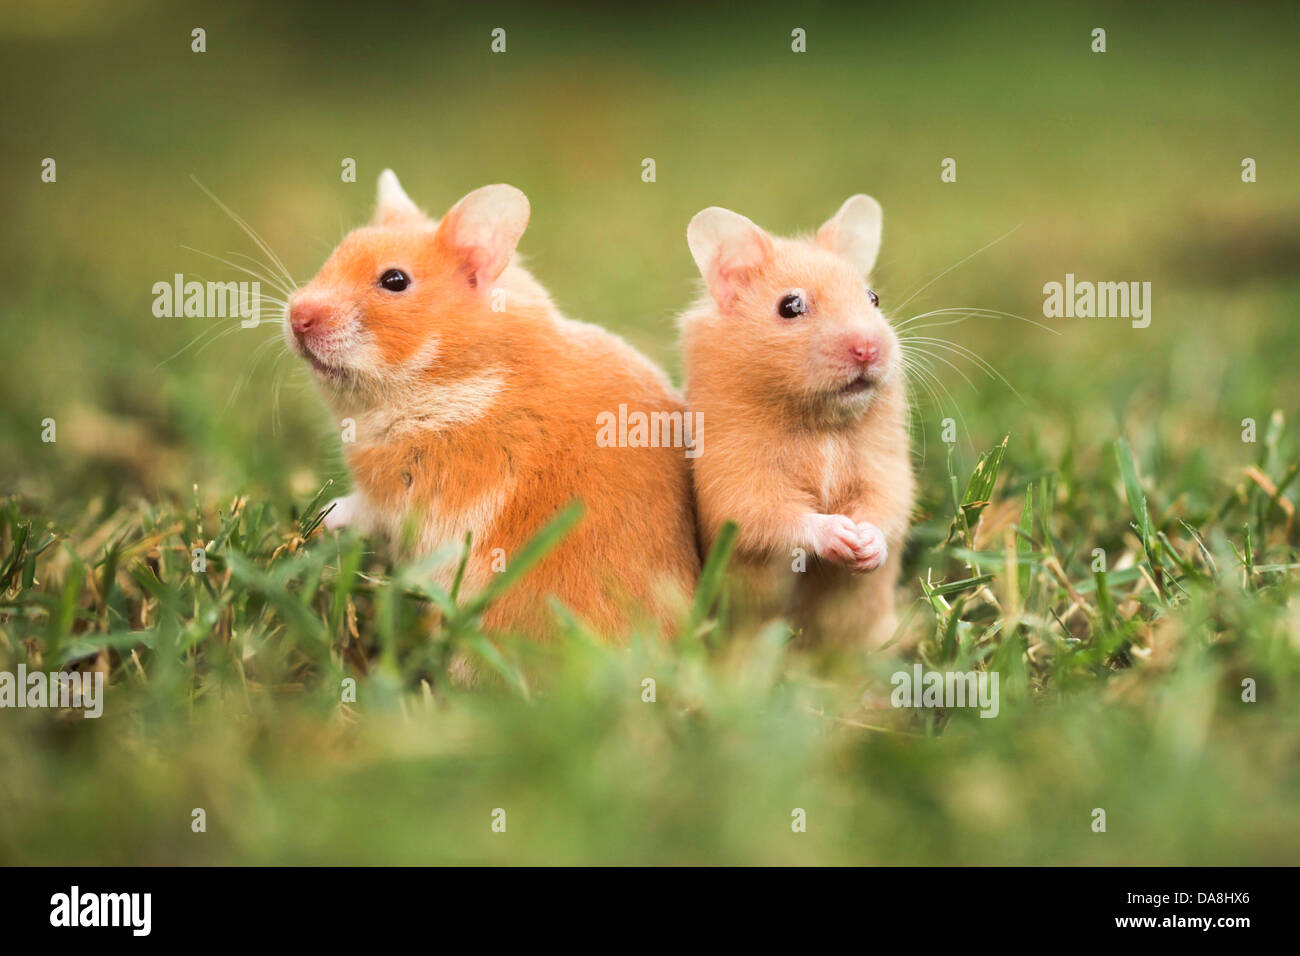 golden hamster or Syrian hamster, (Mesocricetus auratus) on the lawn - Stock Image